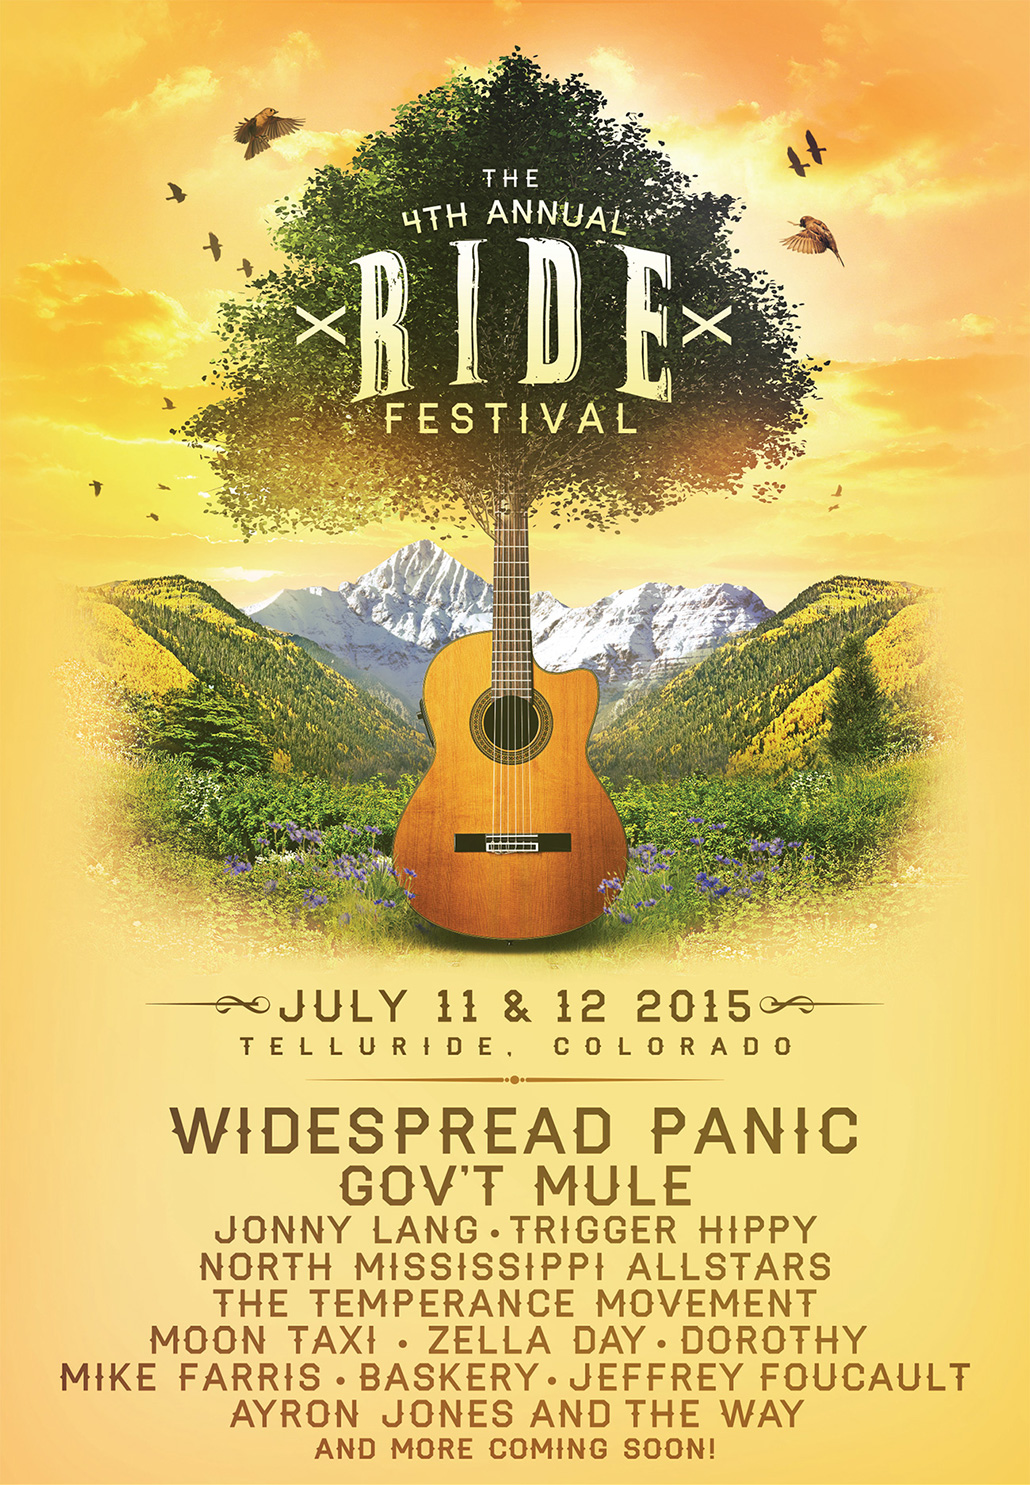 The 4th Annual Ride Festival - July 11 & 12, 2015 in Telluride, CO